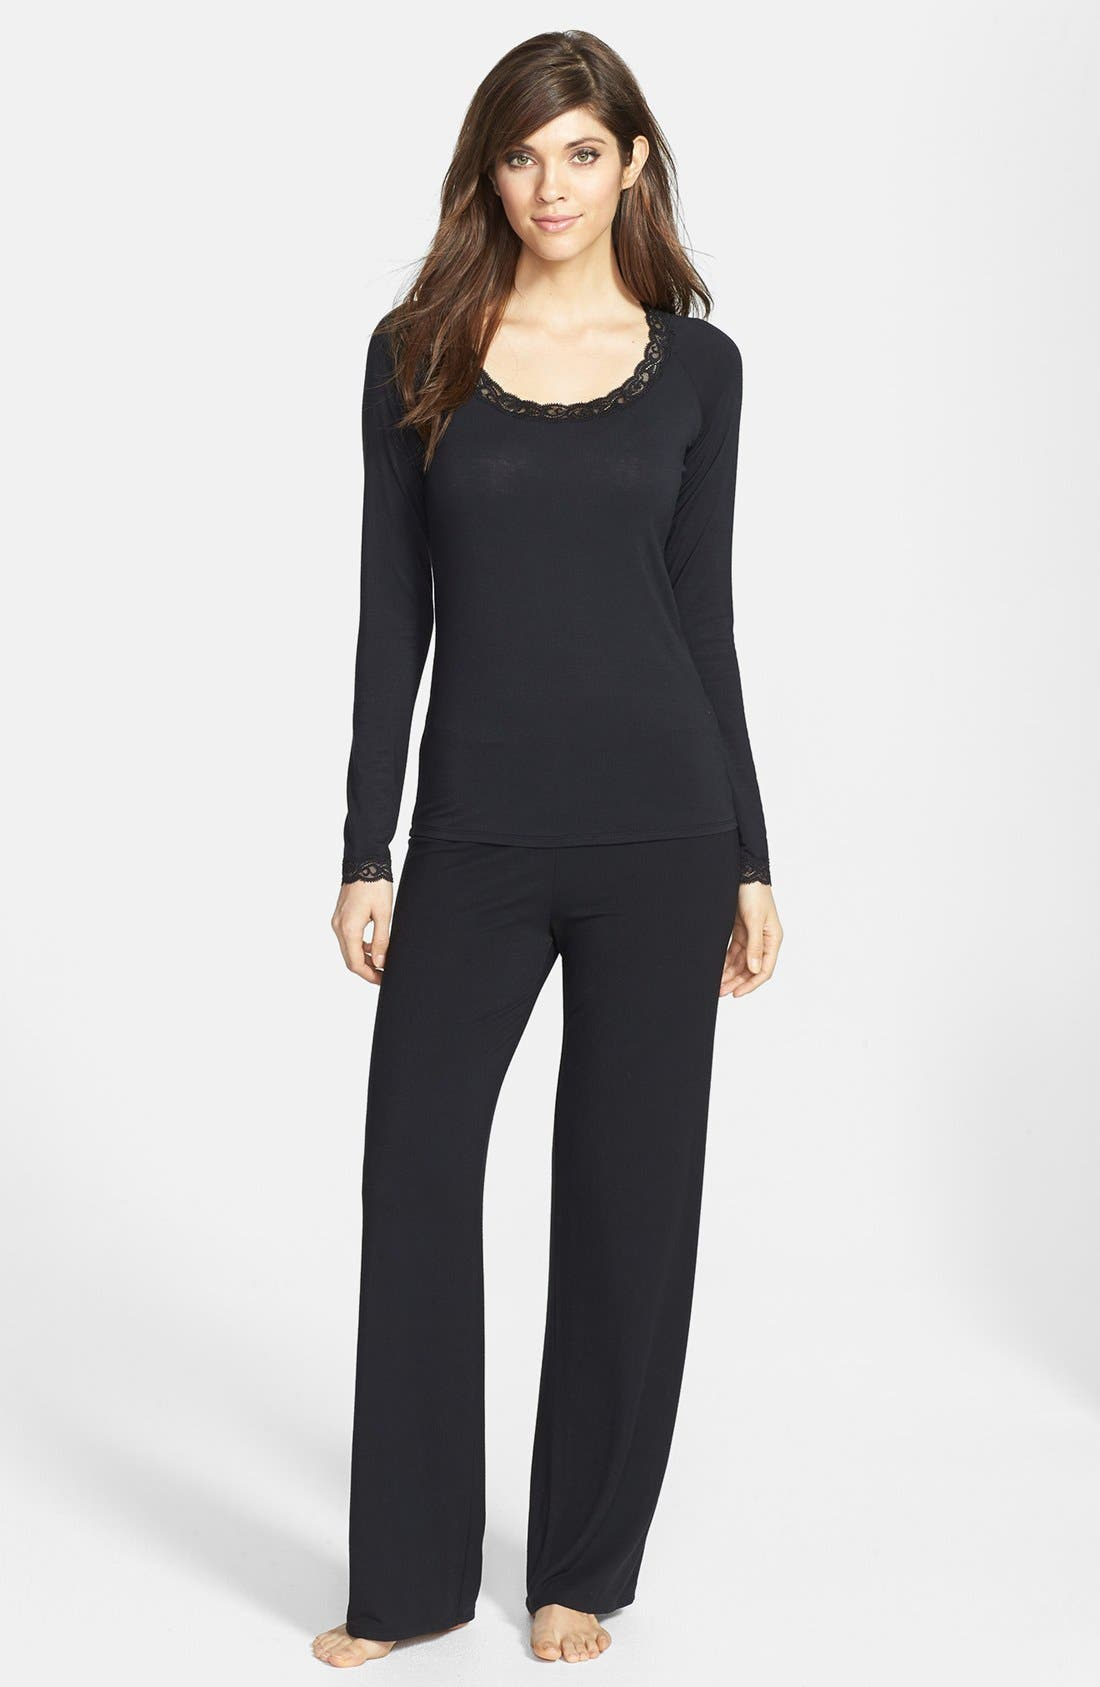 Main Image - Natori 'Feathers' Lace Trim Pajamas